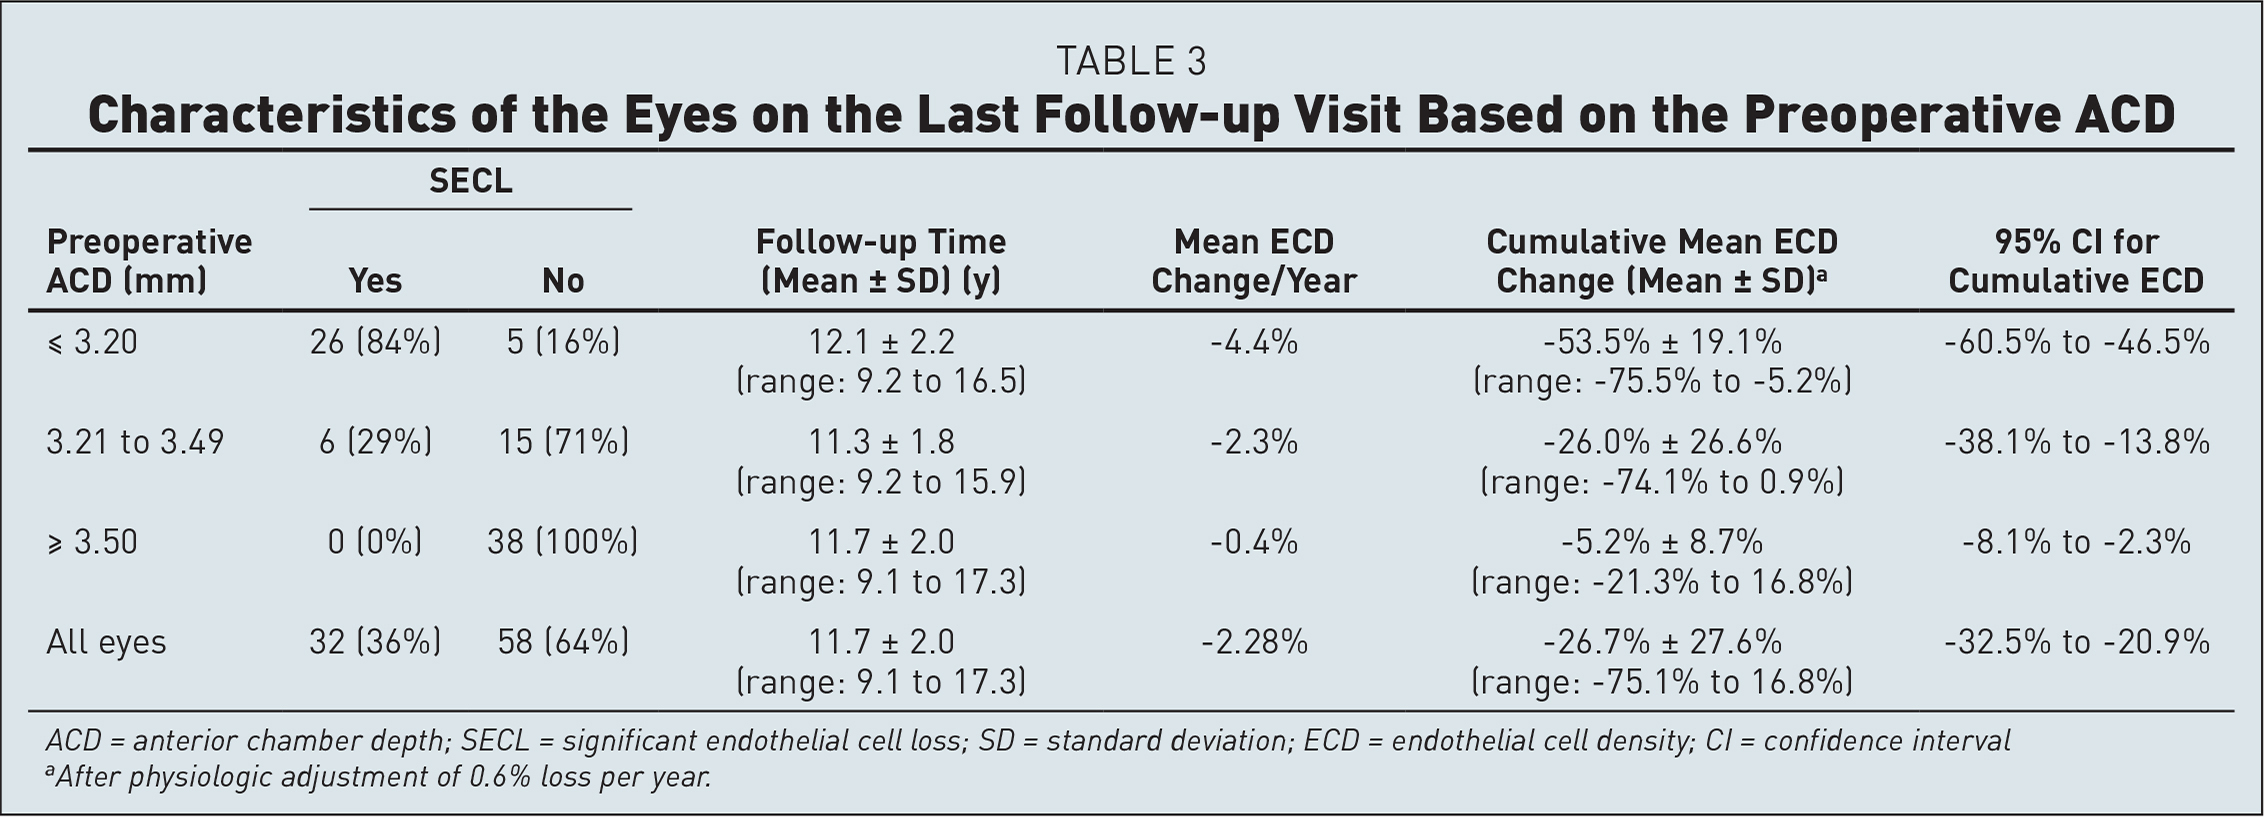 Characteristics of the Eyes on the Last Follow-up Visit Based on the Preoperative ACD